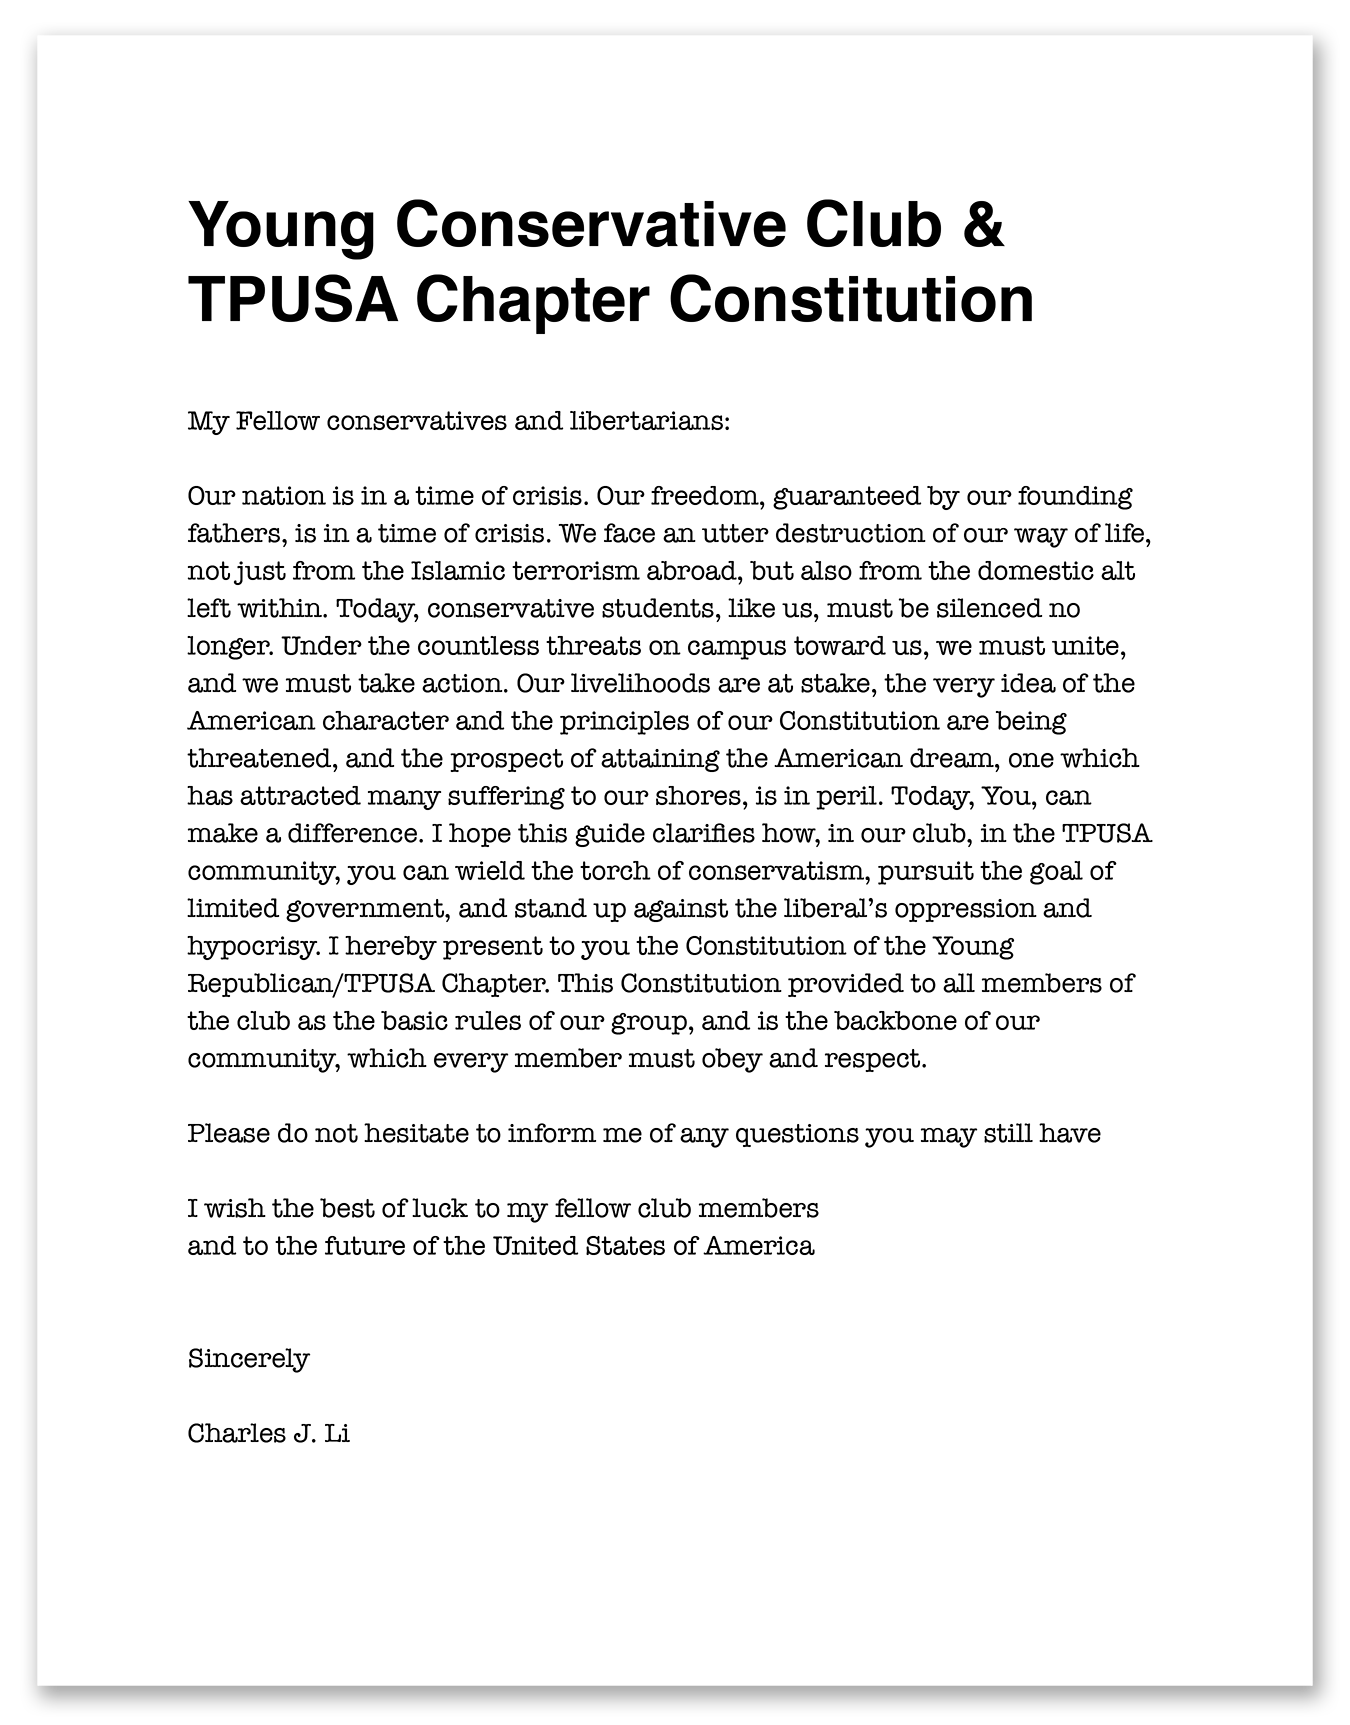 CLICK TO READ ENTIRE DOCUMENT Constitution for the Young Conservative Club that Li founded (Document / Li)